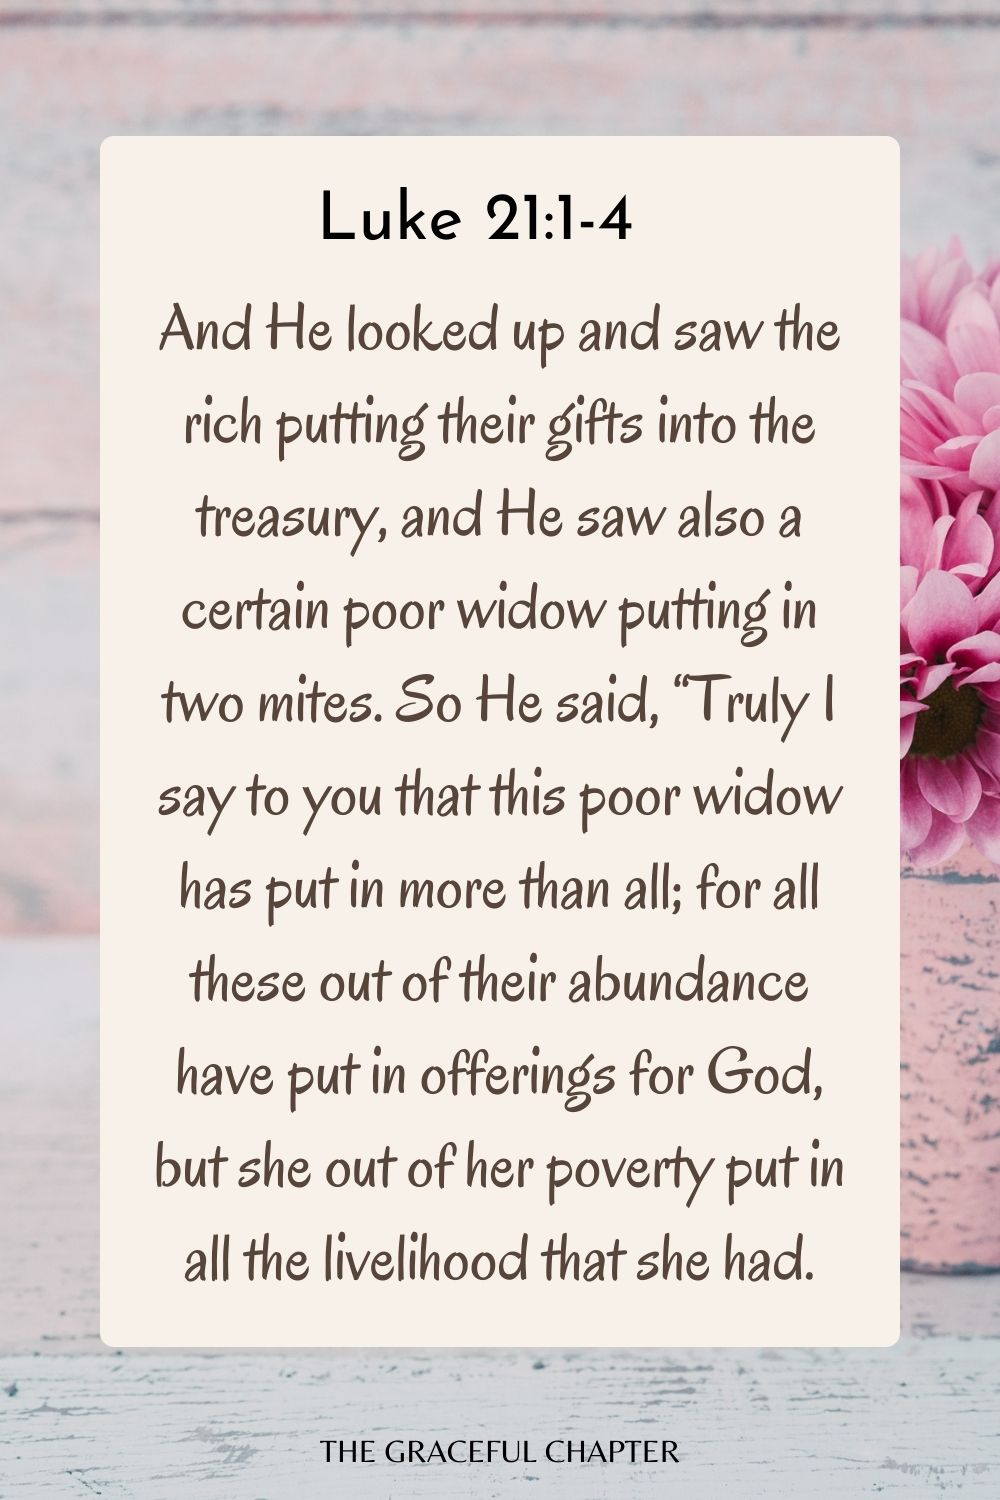 """And He looked up and saw the rich putting their gifts into the treasury, and He saw also a certain poor widow putting in two mites. So He said, """"Truly I say to you that this poor widow has put in more than all; for all these out of their abundance have put in offerings for God, but she out of her poverty put in all the livelihood that she had. Luke 21:1-4"""